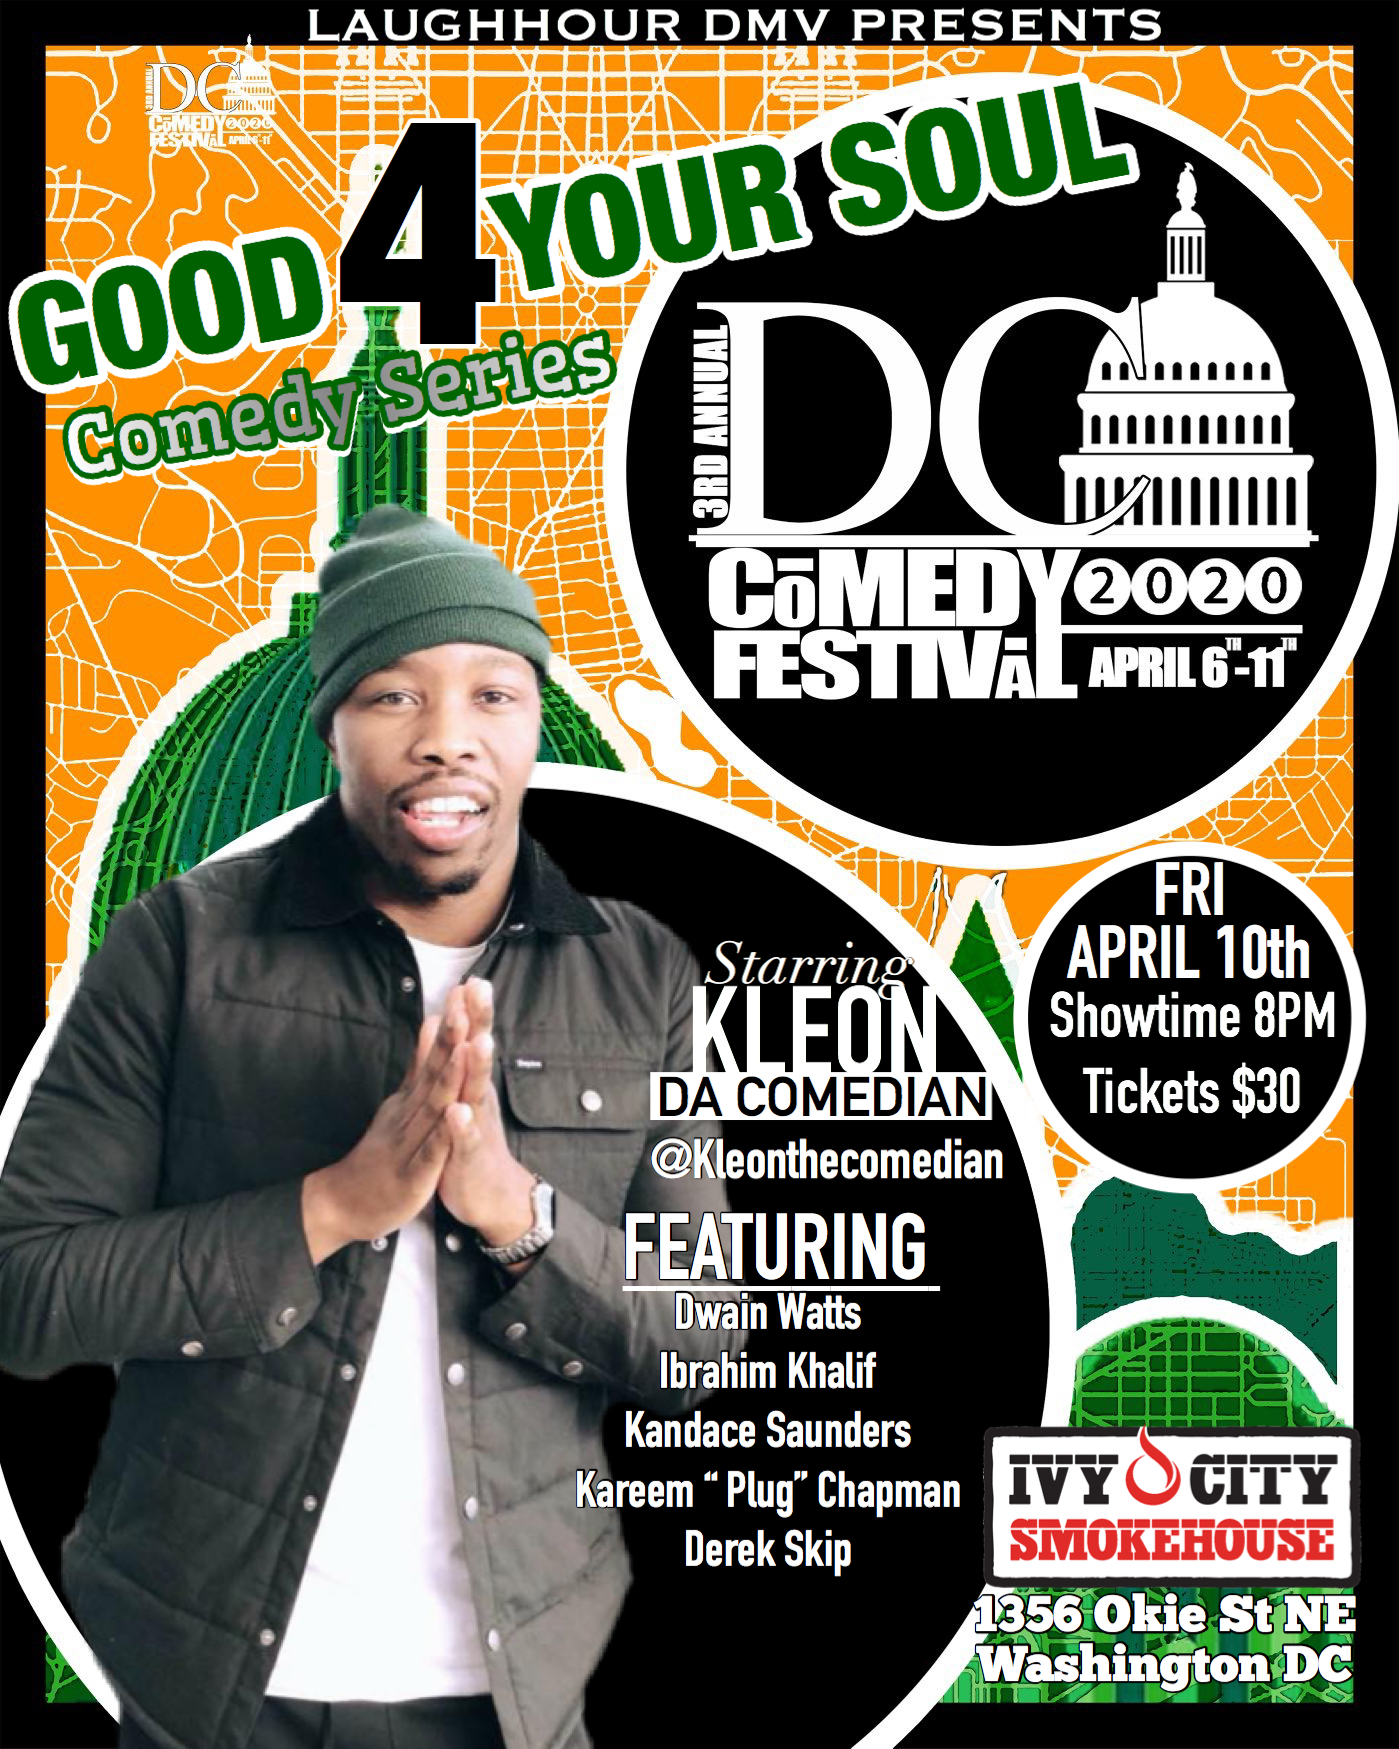 GOOD 4 THE SOUL COMEDY SERIES @ DC COMEDY FESTIVAL